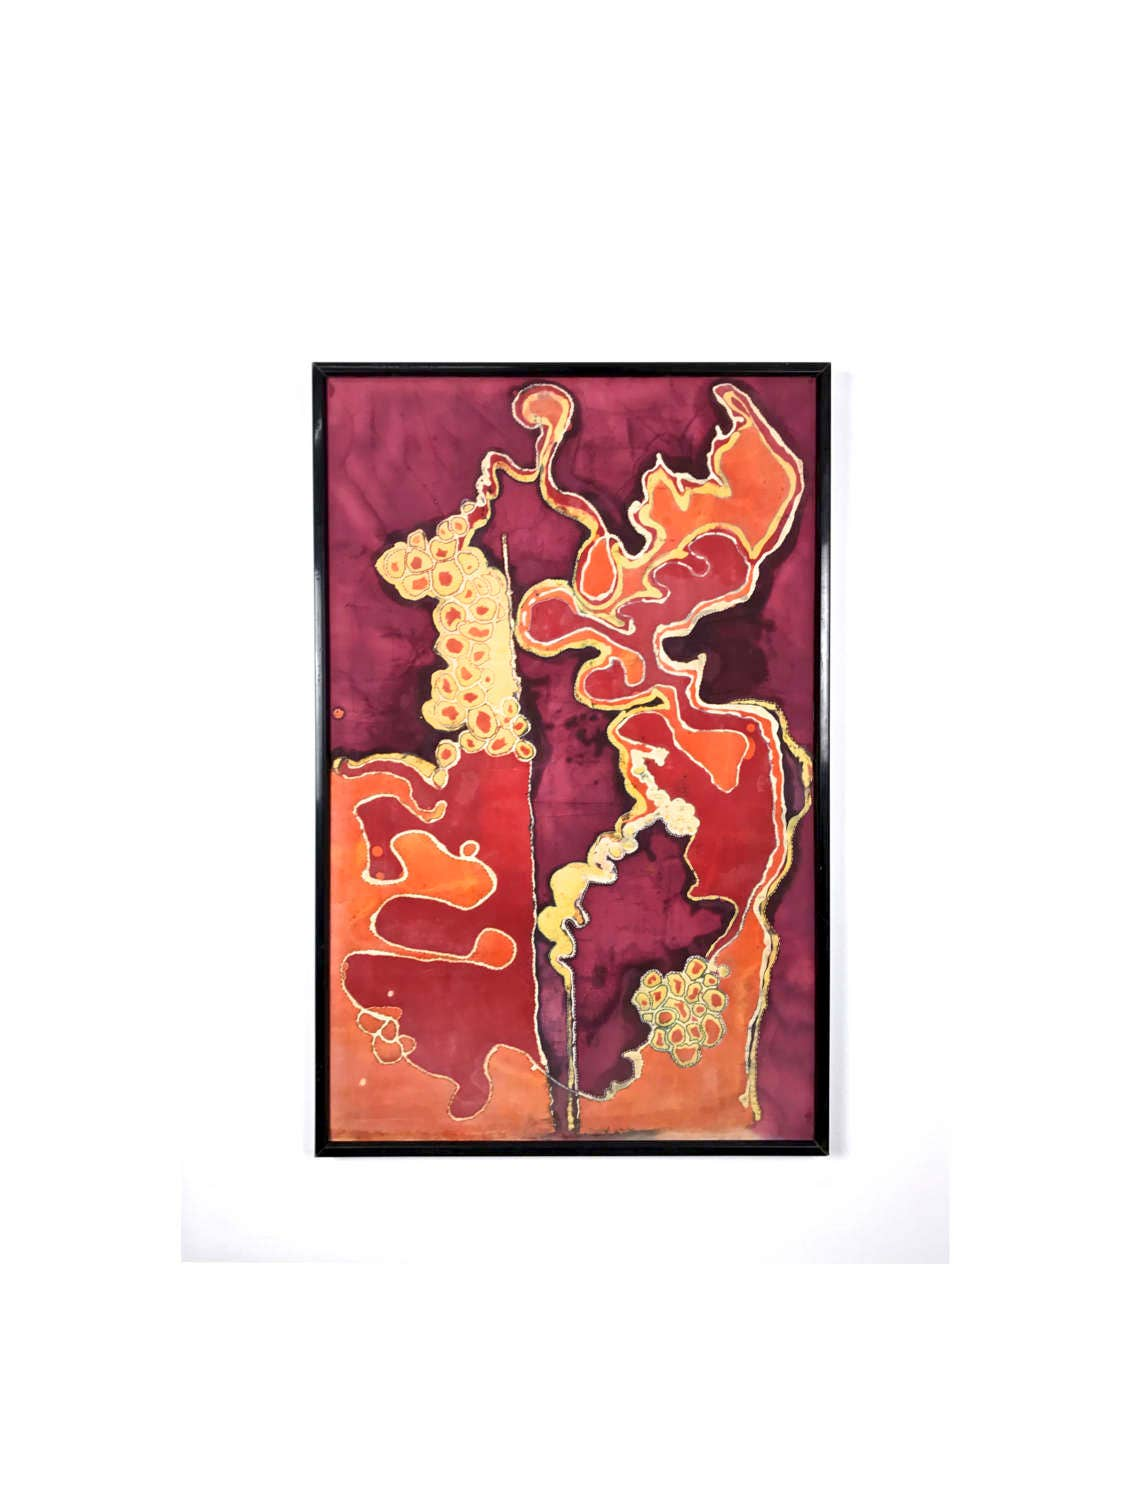 38x25 Vintage Abstract Textile Framed Wall Art Painting C1970 S